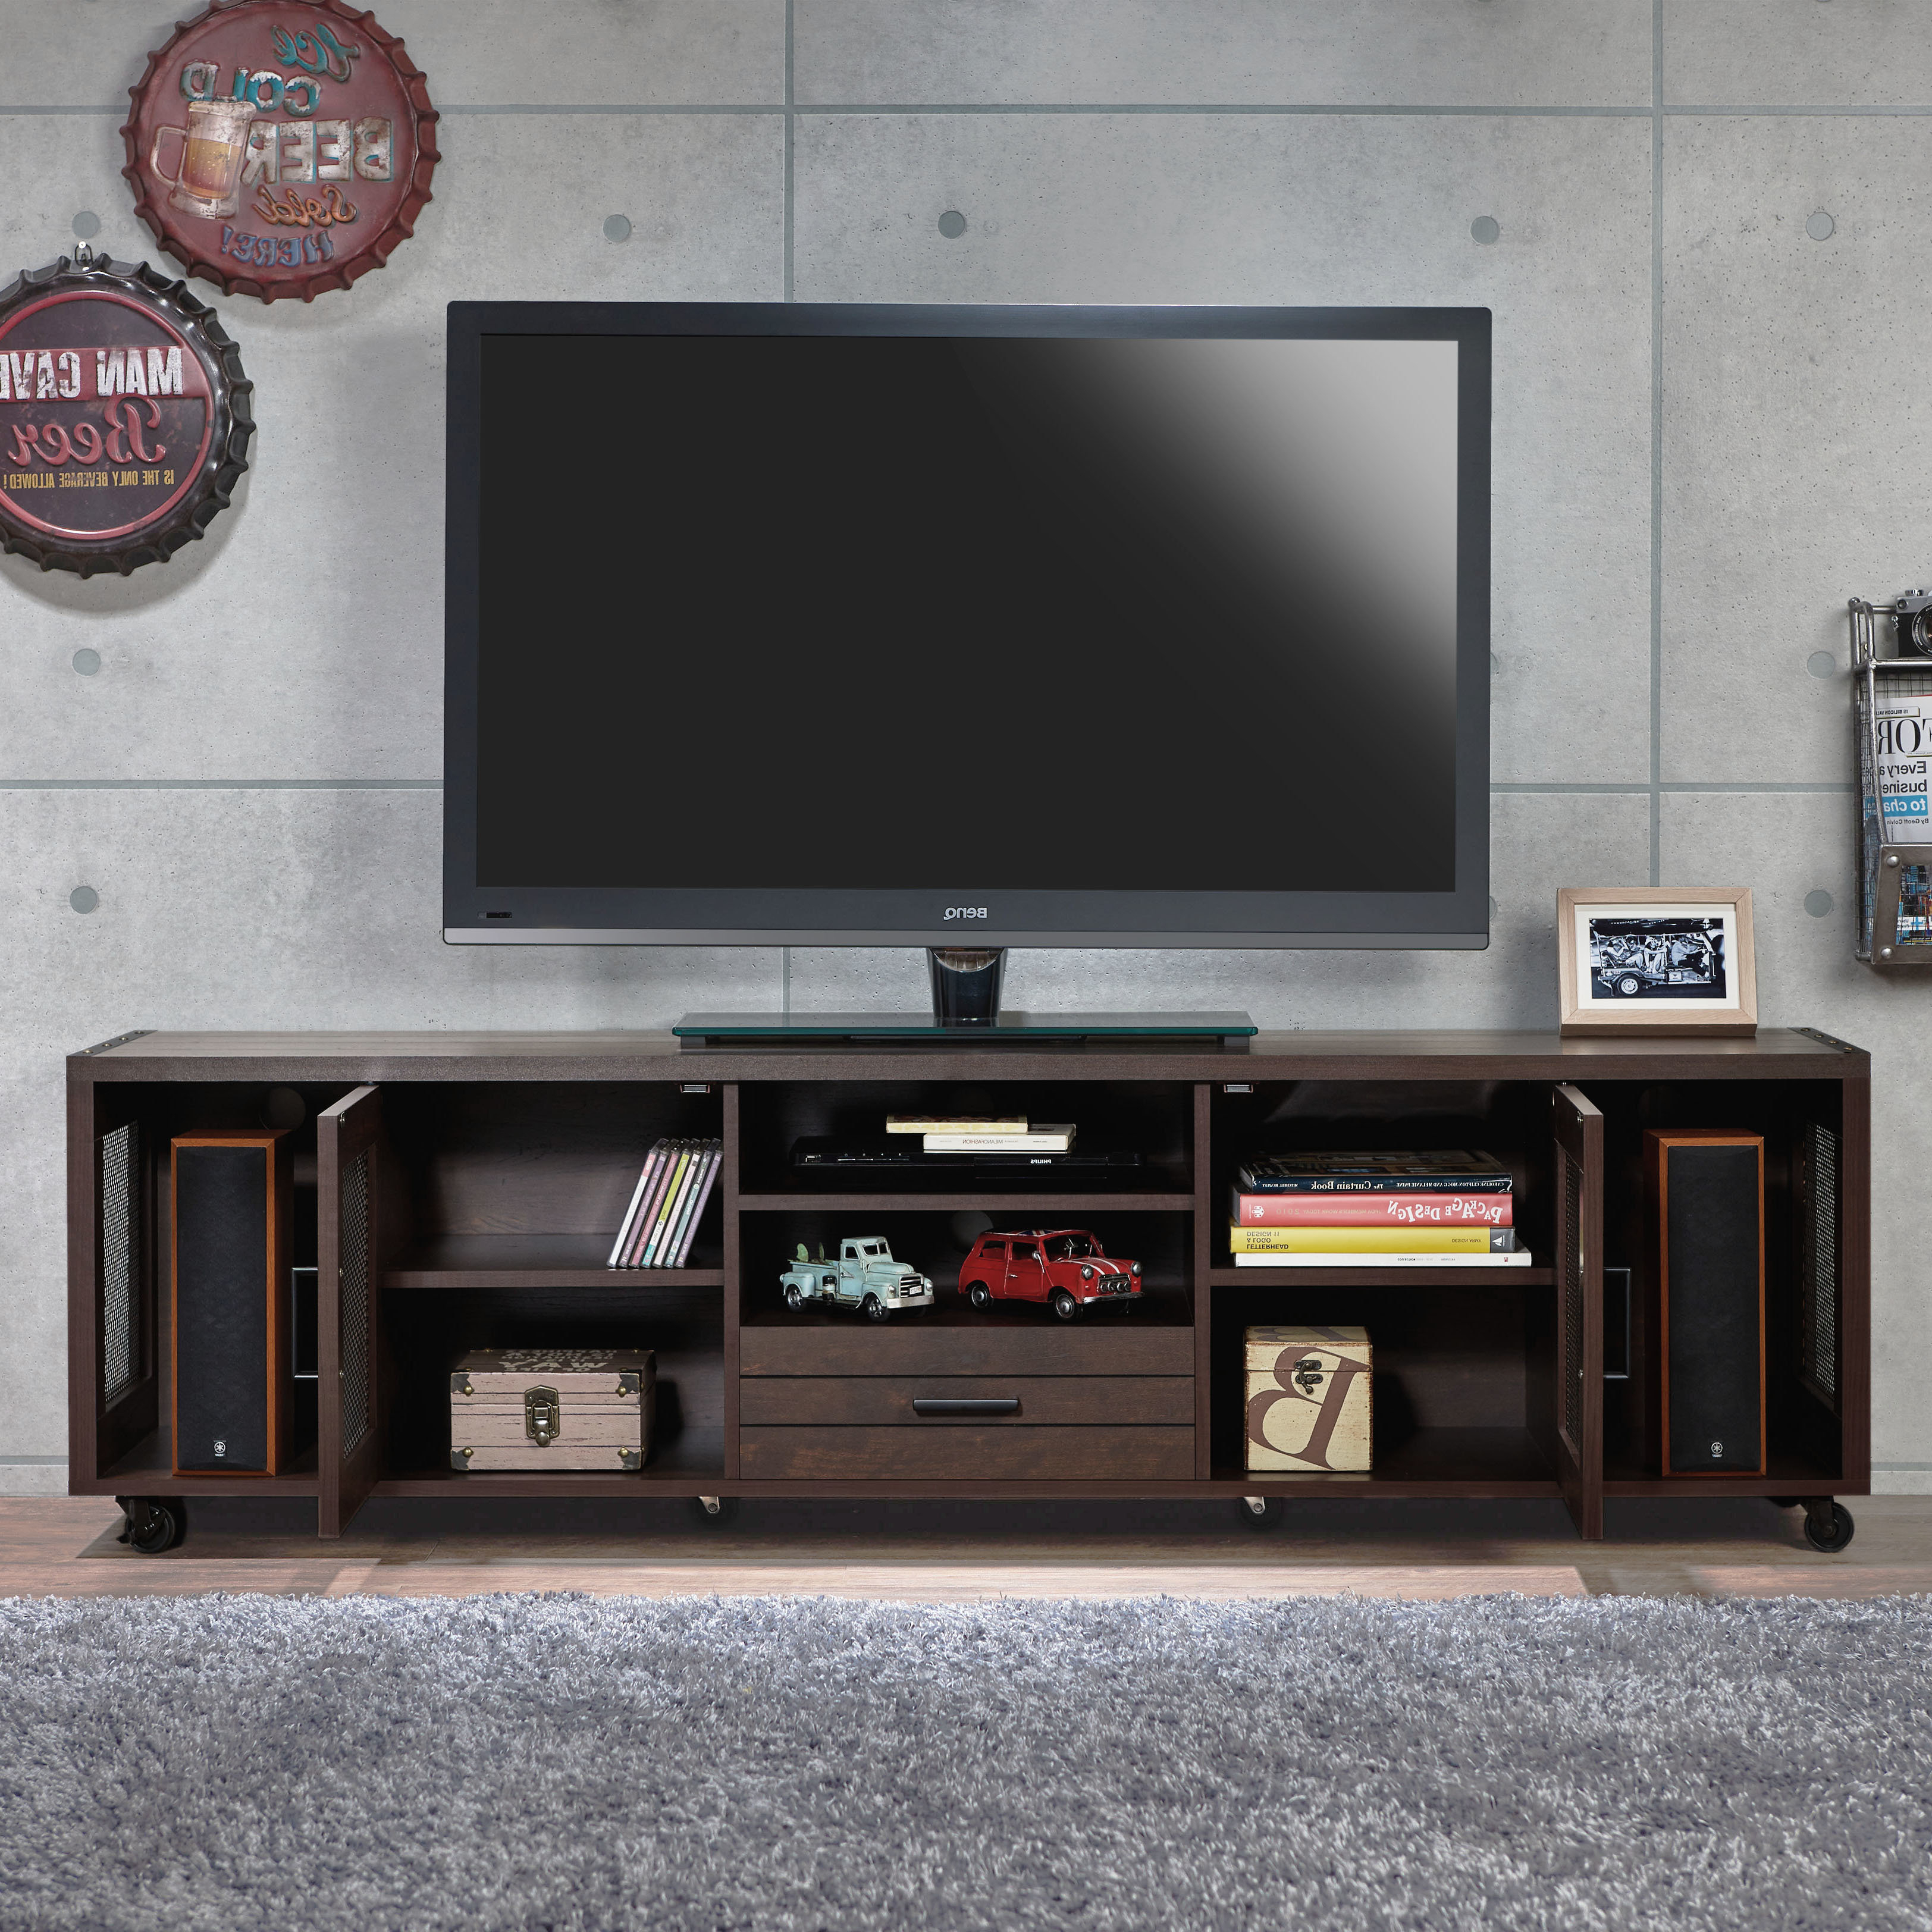 Fashionable Wayfair Tv Stands 55 Inch Corner On Sale 60 Stand With Fireplace Throughout Wayfair Corner Tv Stands (View 13 of 20)